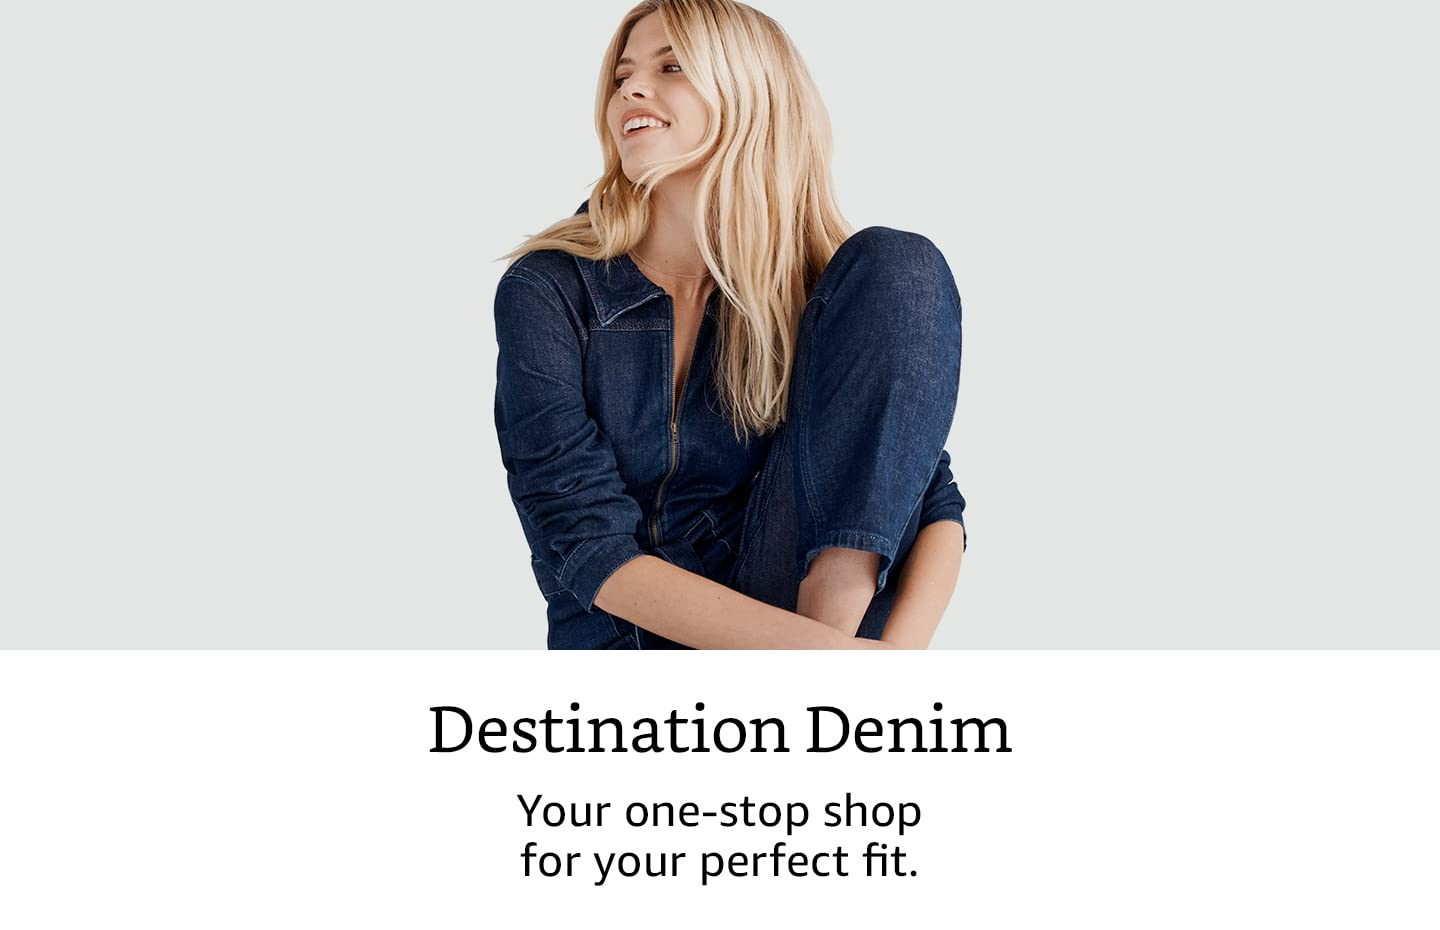 Denim Destination